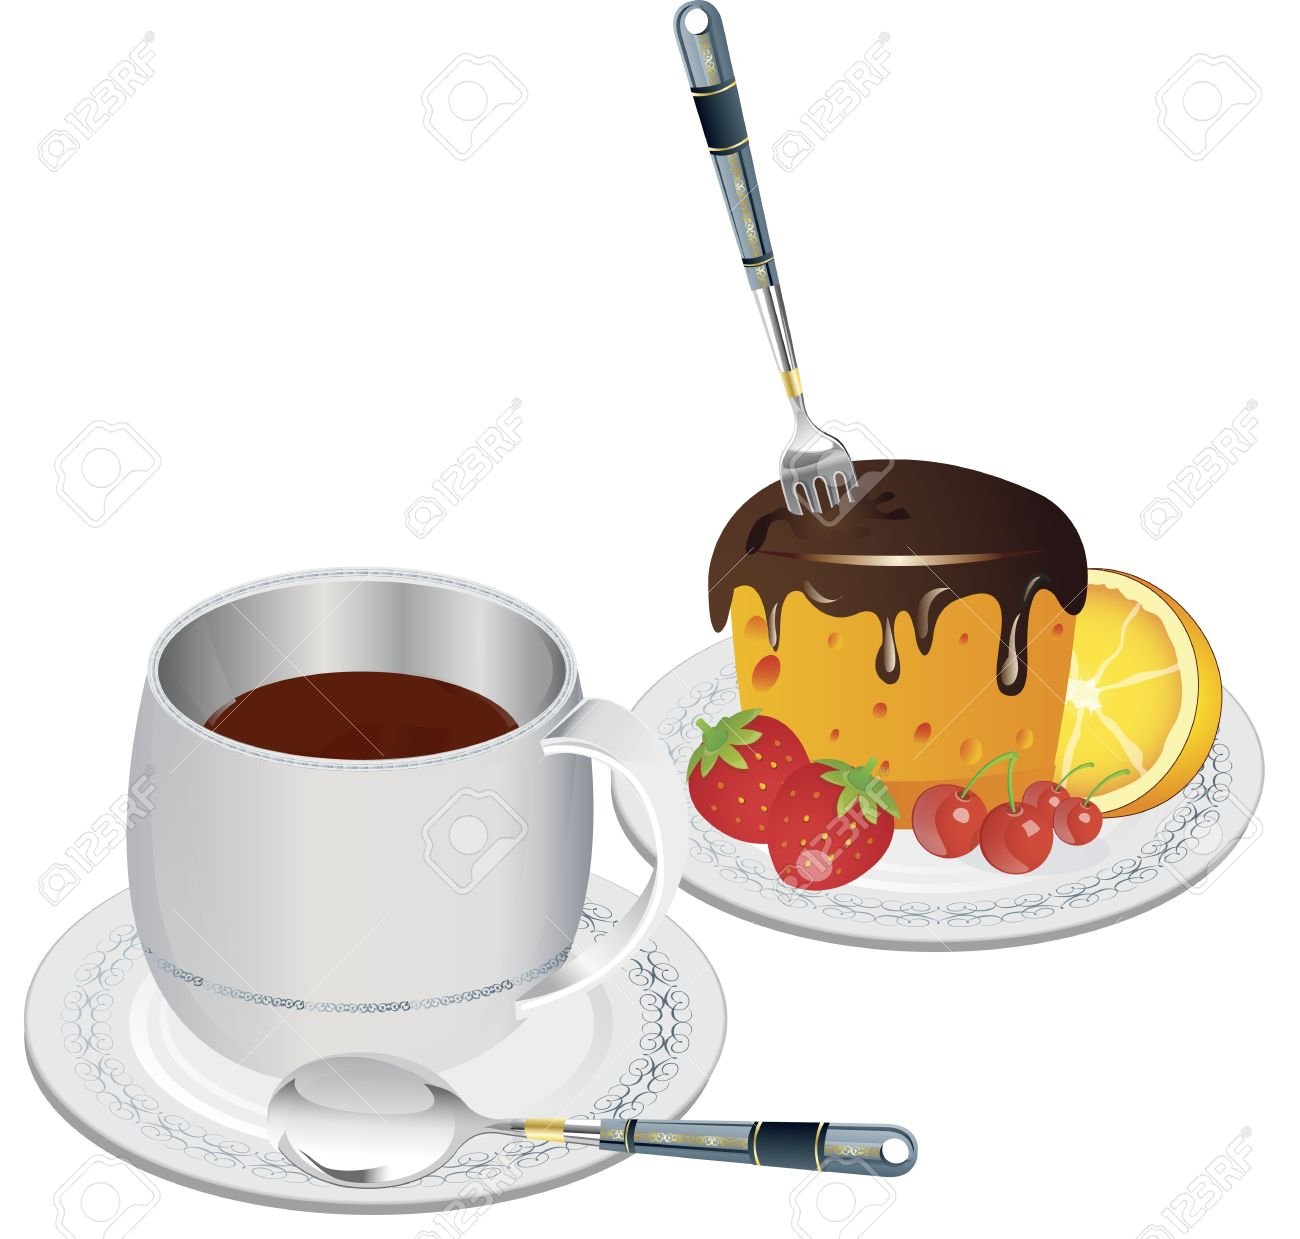 Clip art image of a cup of coffee and slice of fruit cake.